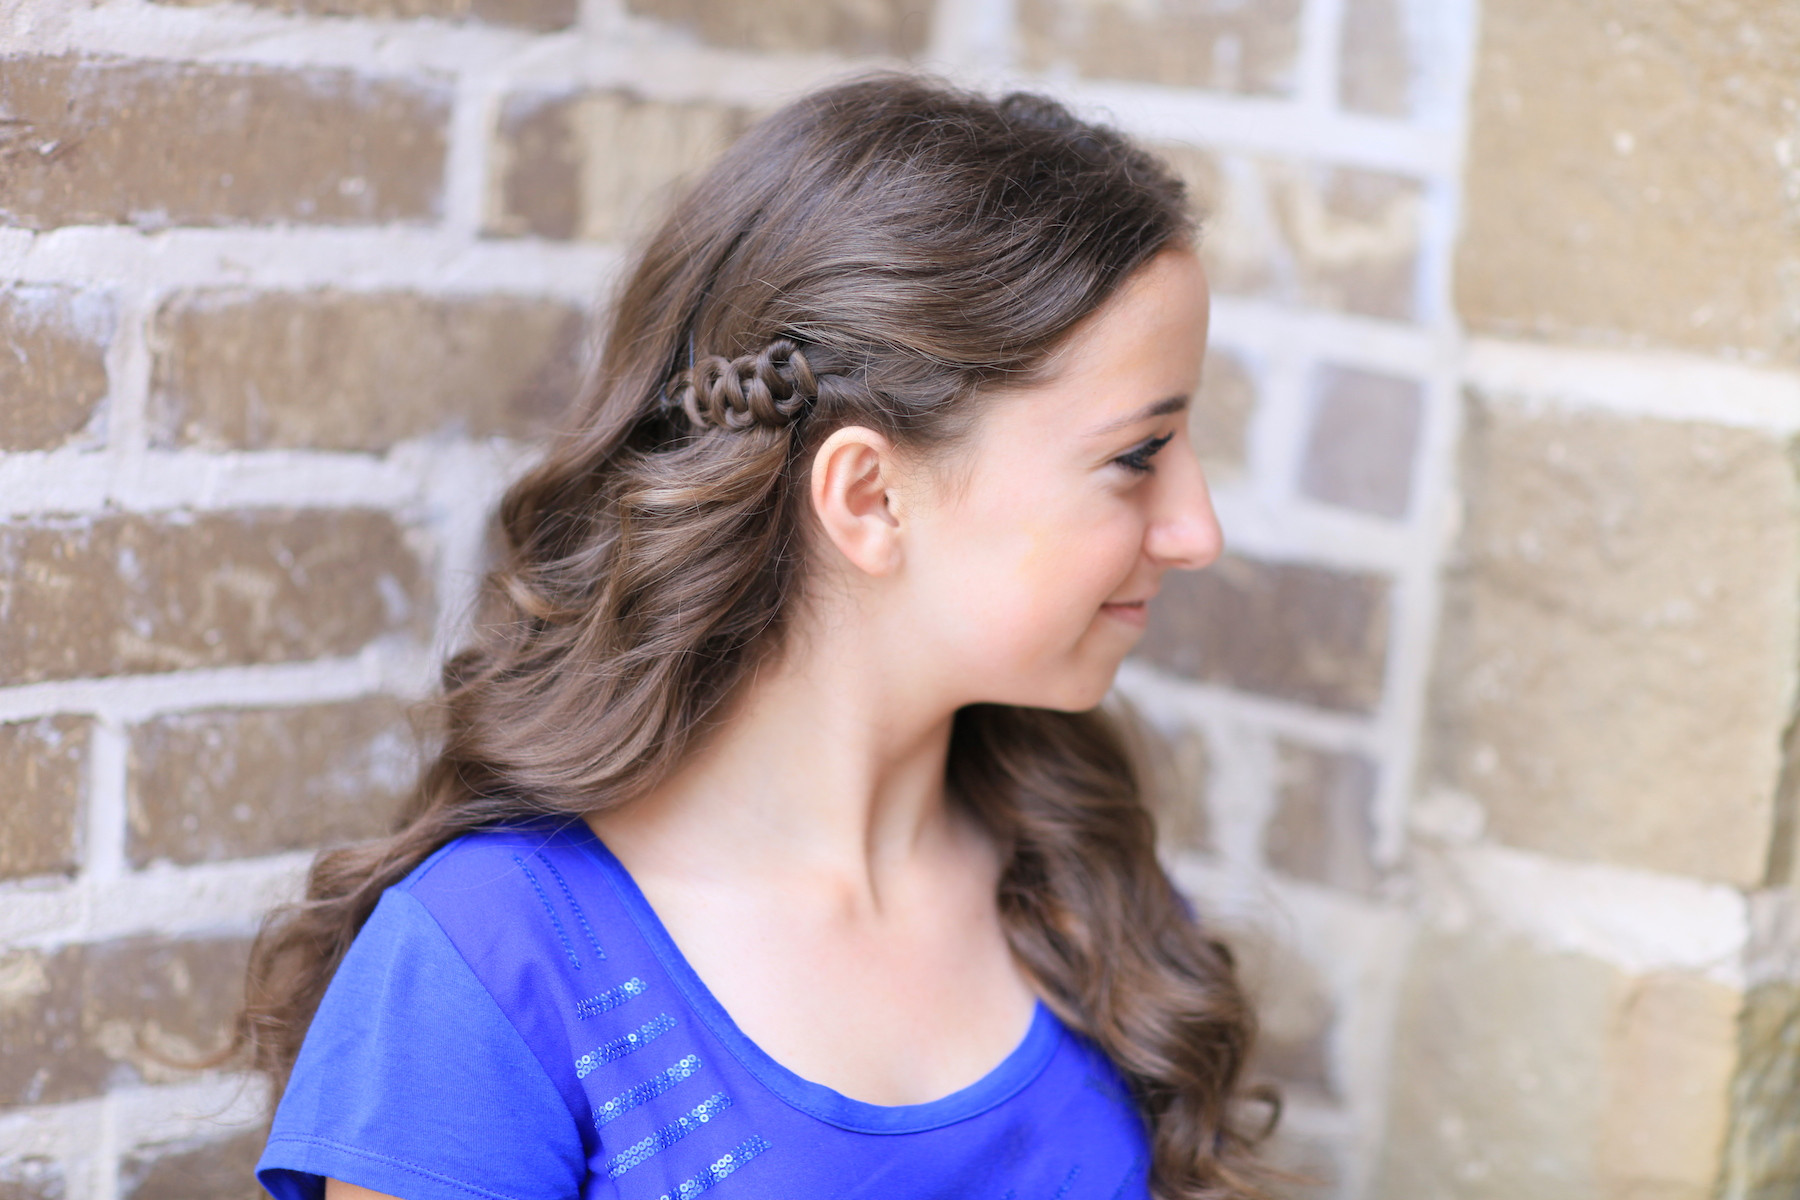 Best ideas about Cute Hairstyles For Concerts . Save or Pin Slide Up Braids Now.